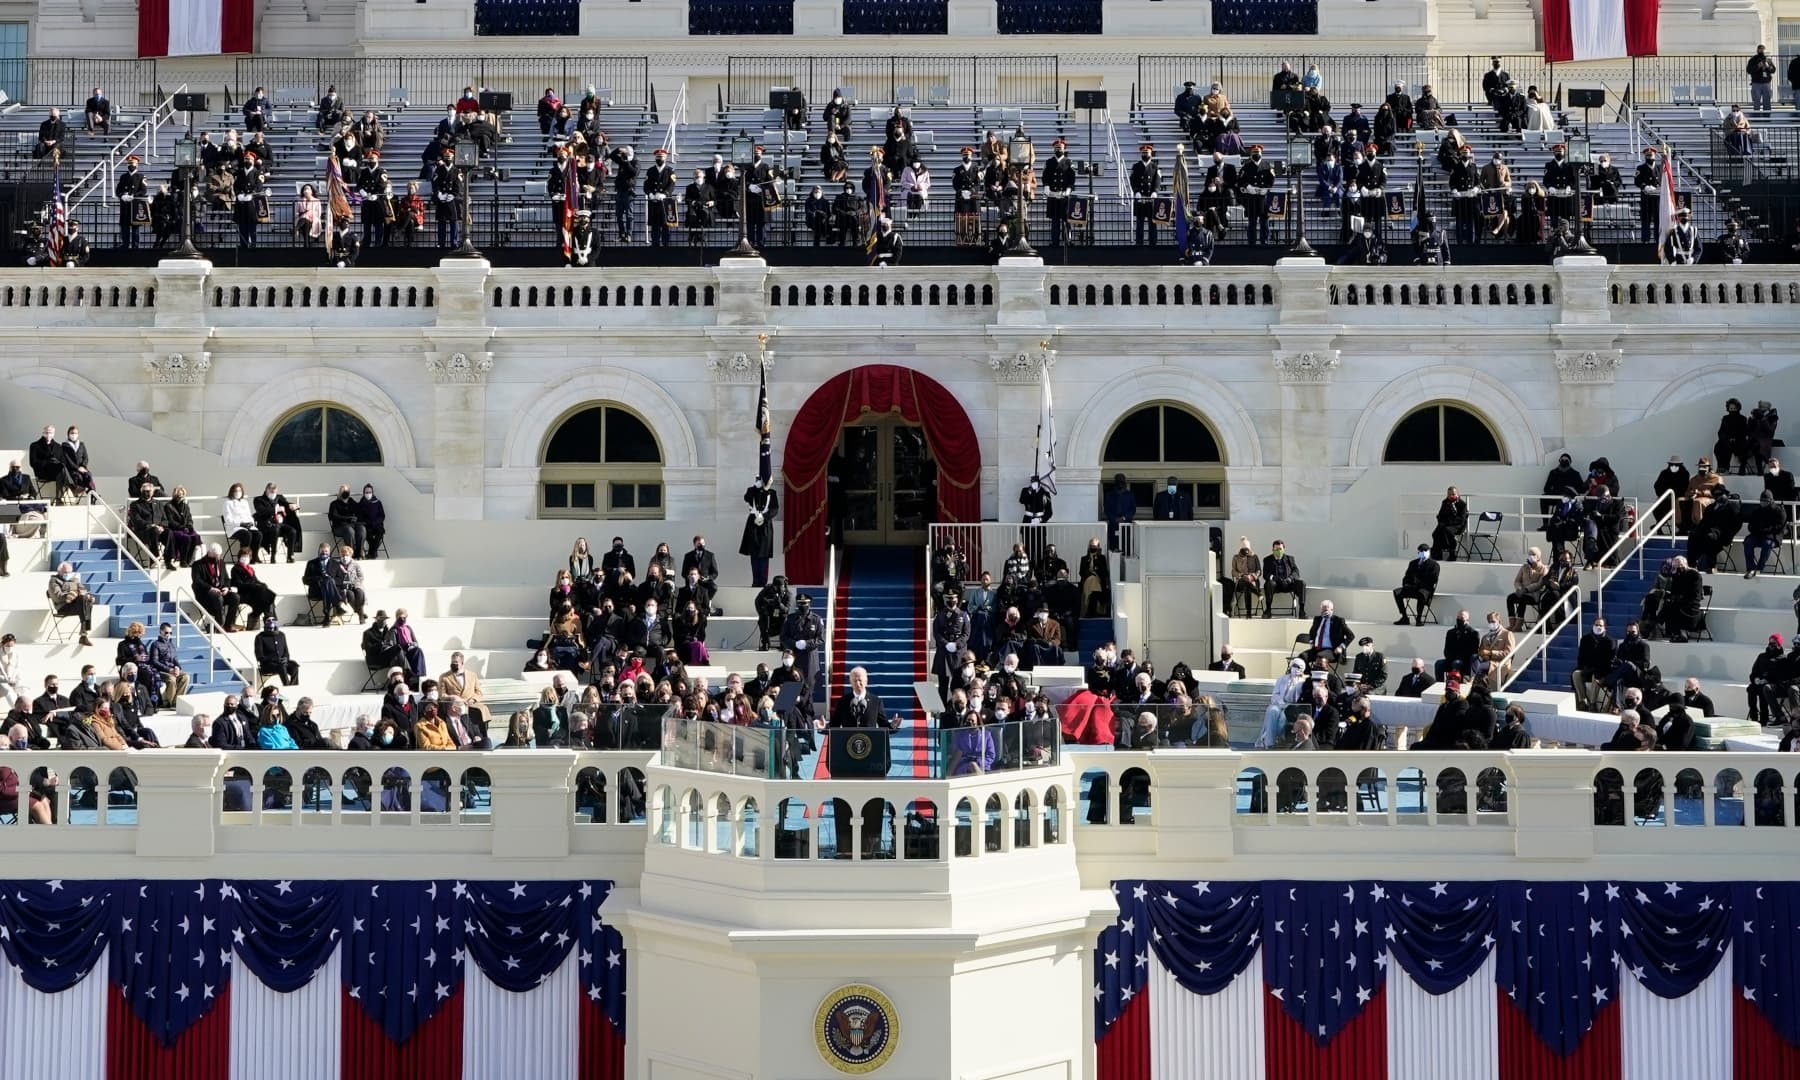 President Joe Biden delivers his inaugural address during the 59th Presidential Inauguration at the US Capitol in Washington, Wednesday. — AP